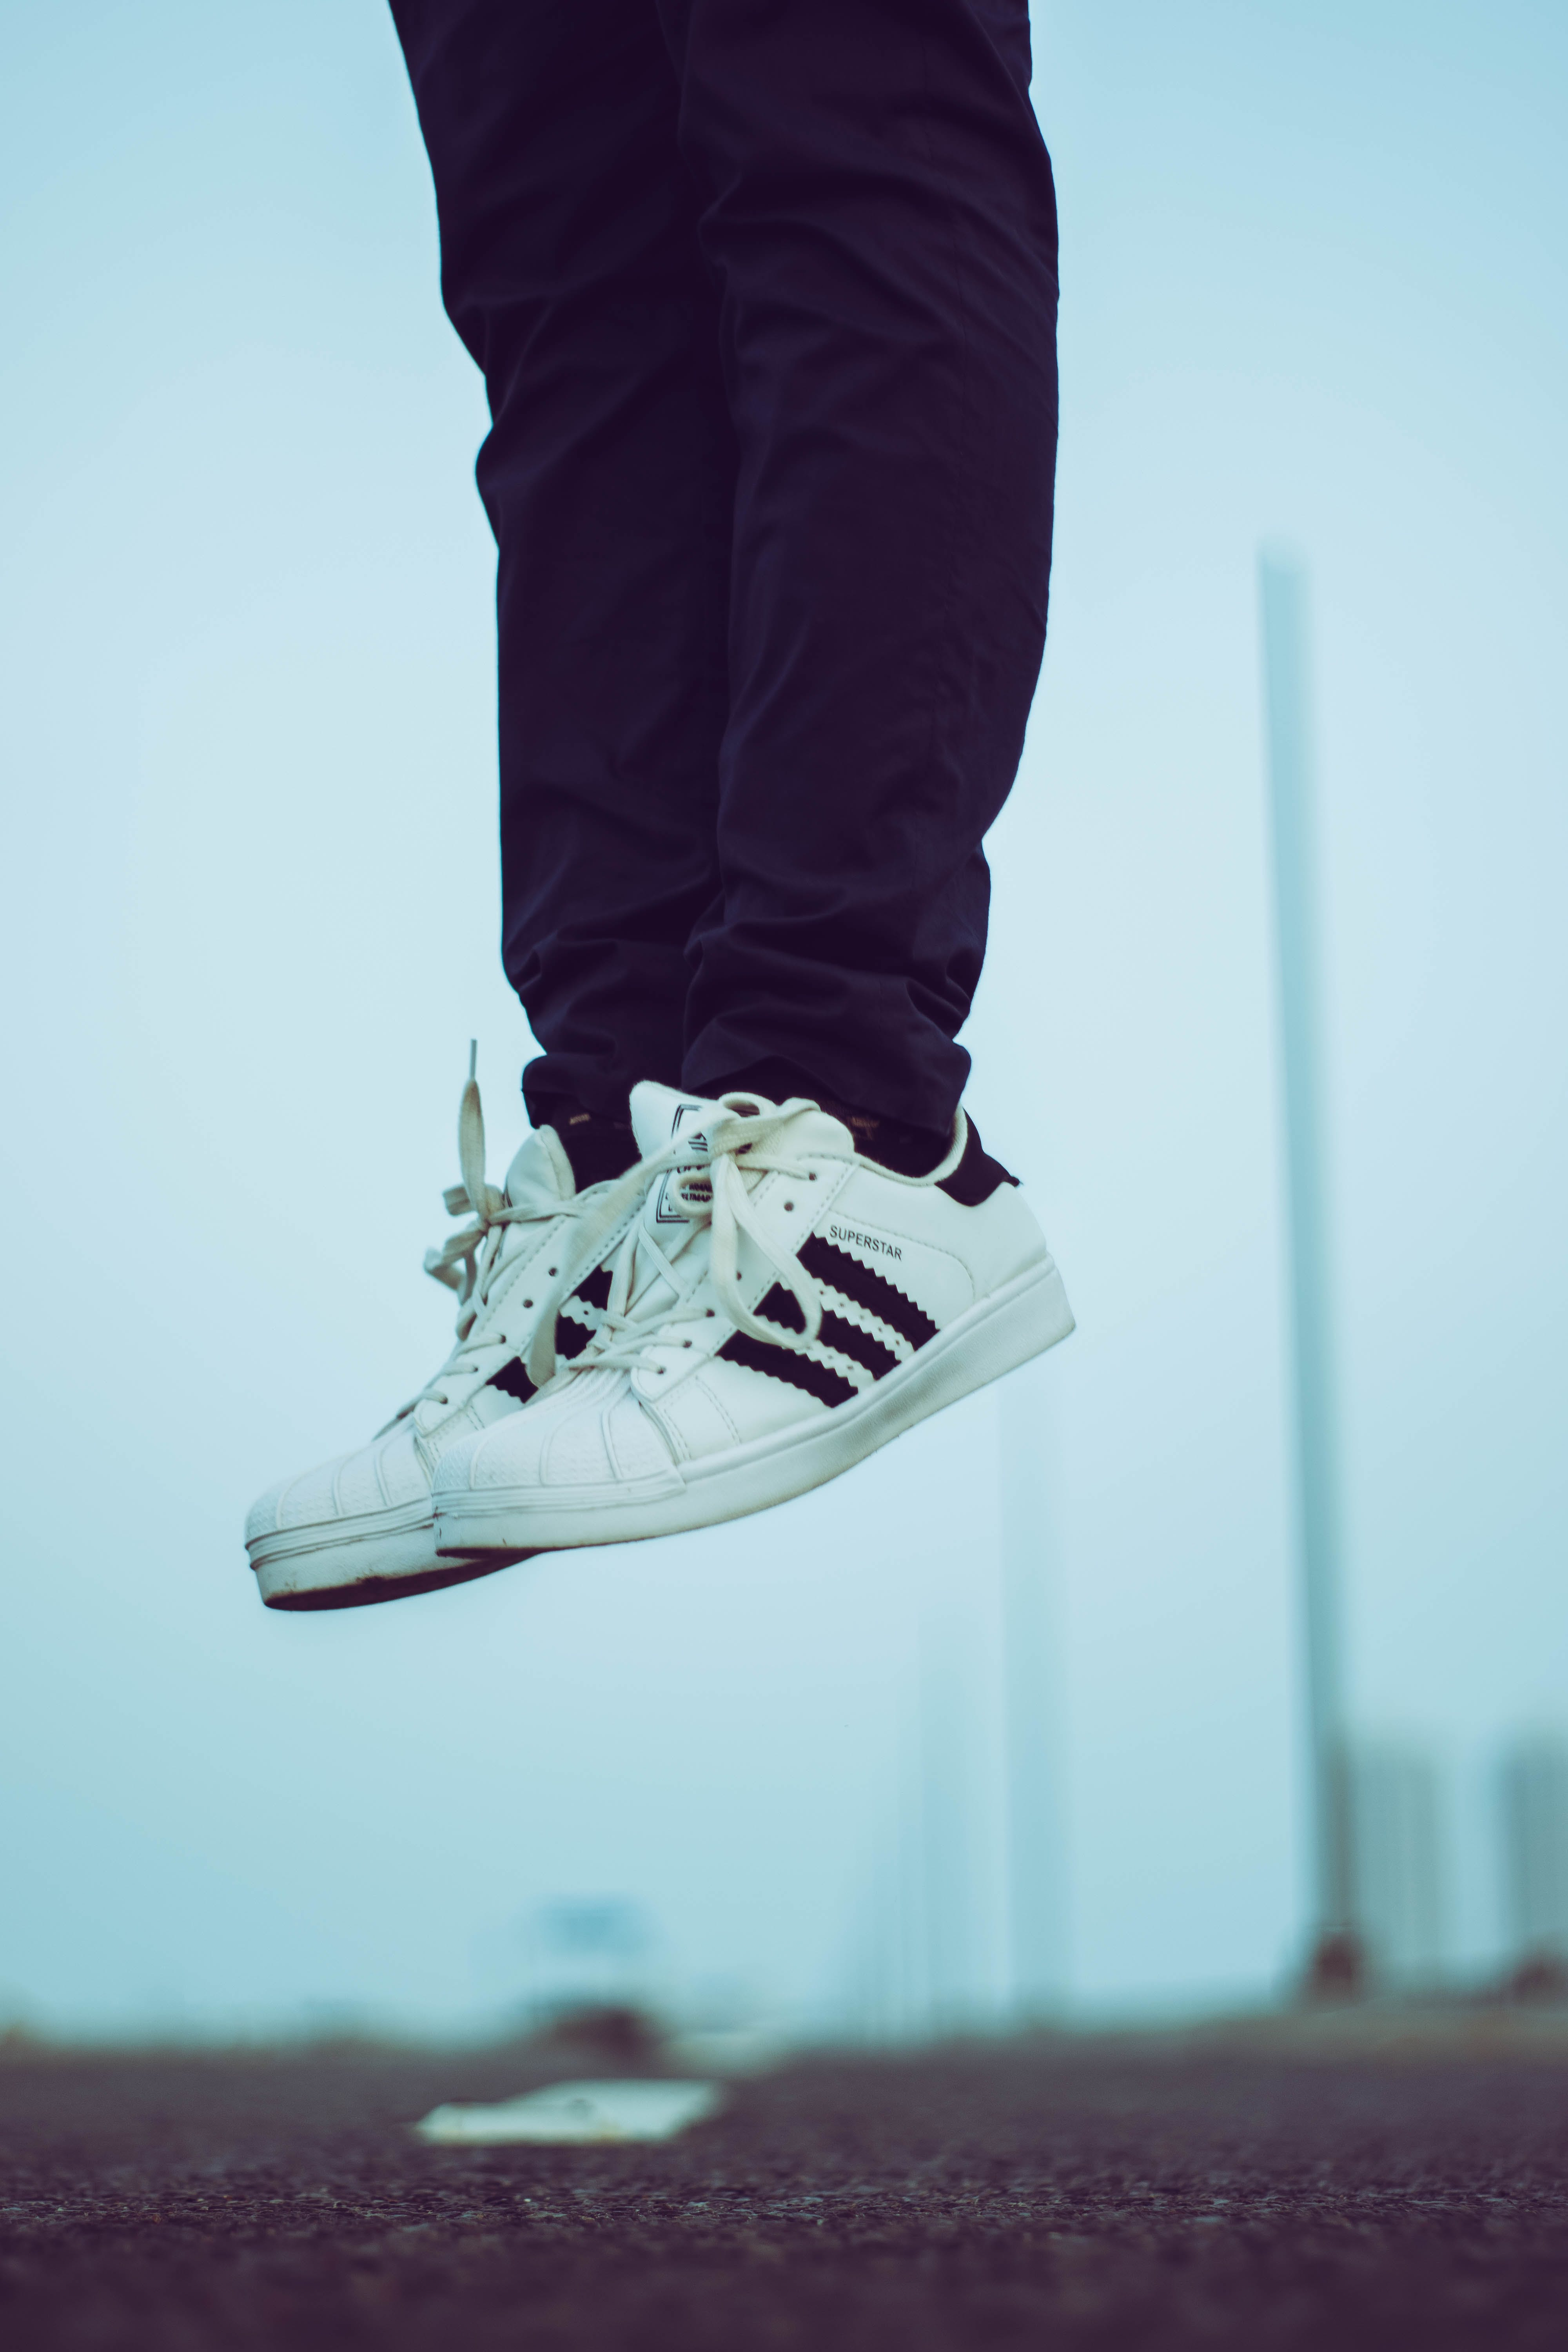 Person Wearing Pair of White Adidas Superstar Shoes